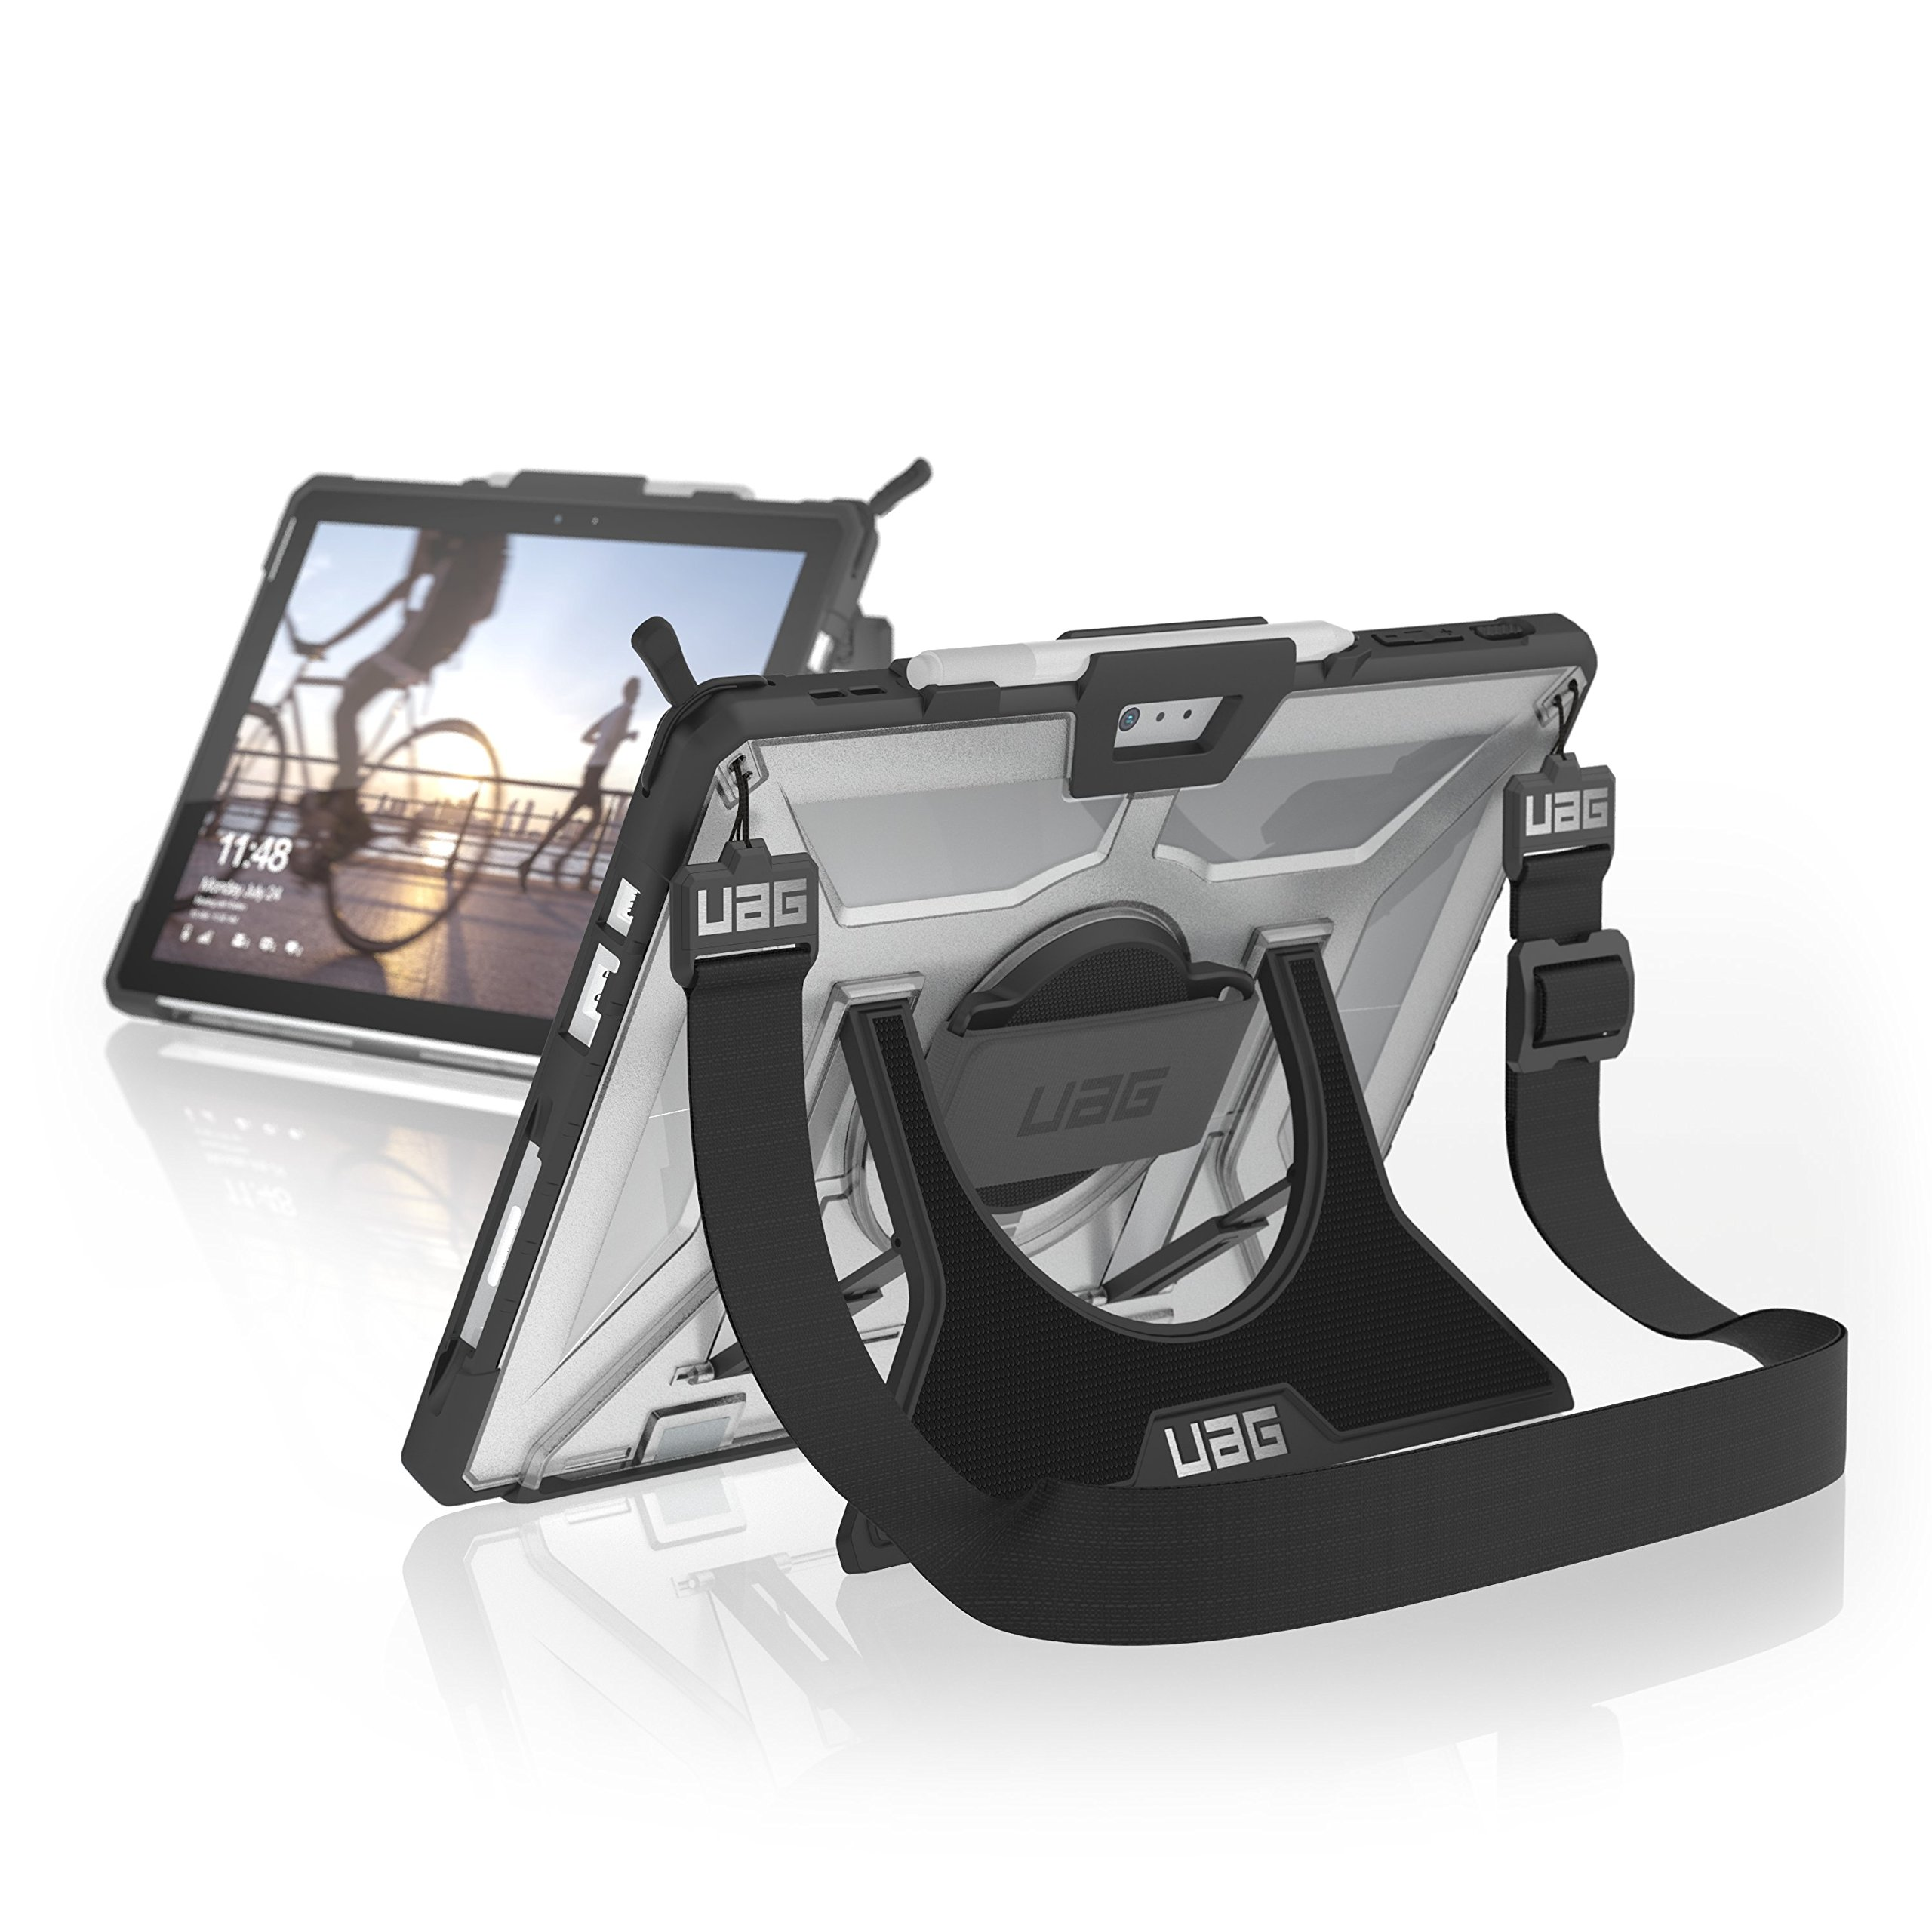 UAG Microsoft Surface Pro (2017) / Surface Pro 4 with Hand Strap & Shoulder Strap Plasma Feather-Light Rugged [ICE] Military Drop Tested Case by URBAN ARMOR GEAR